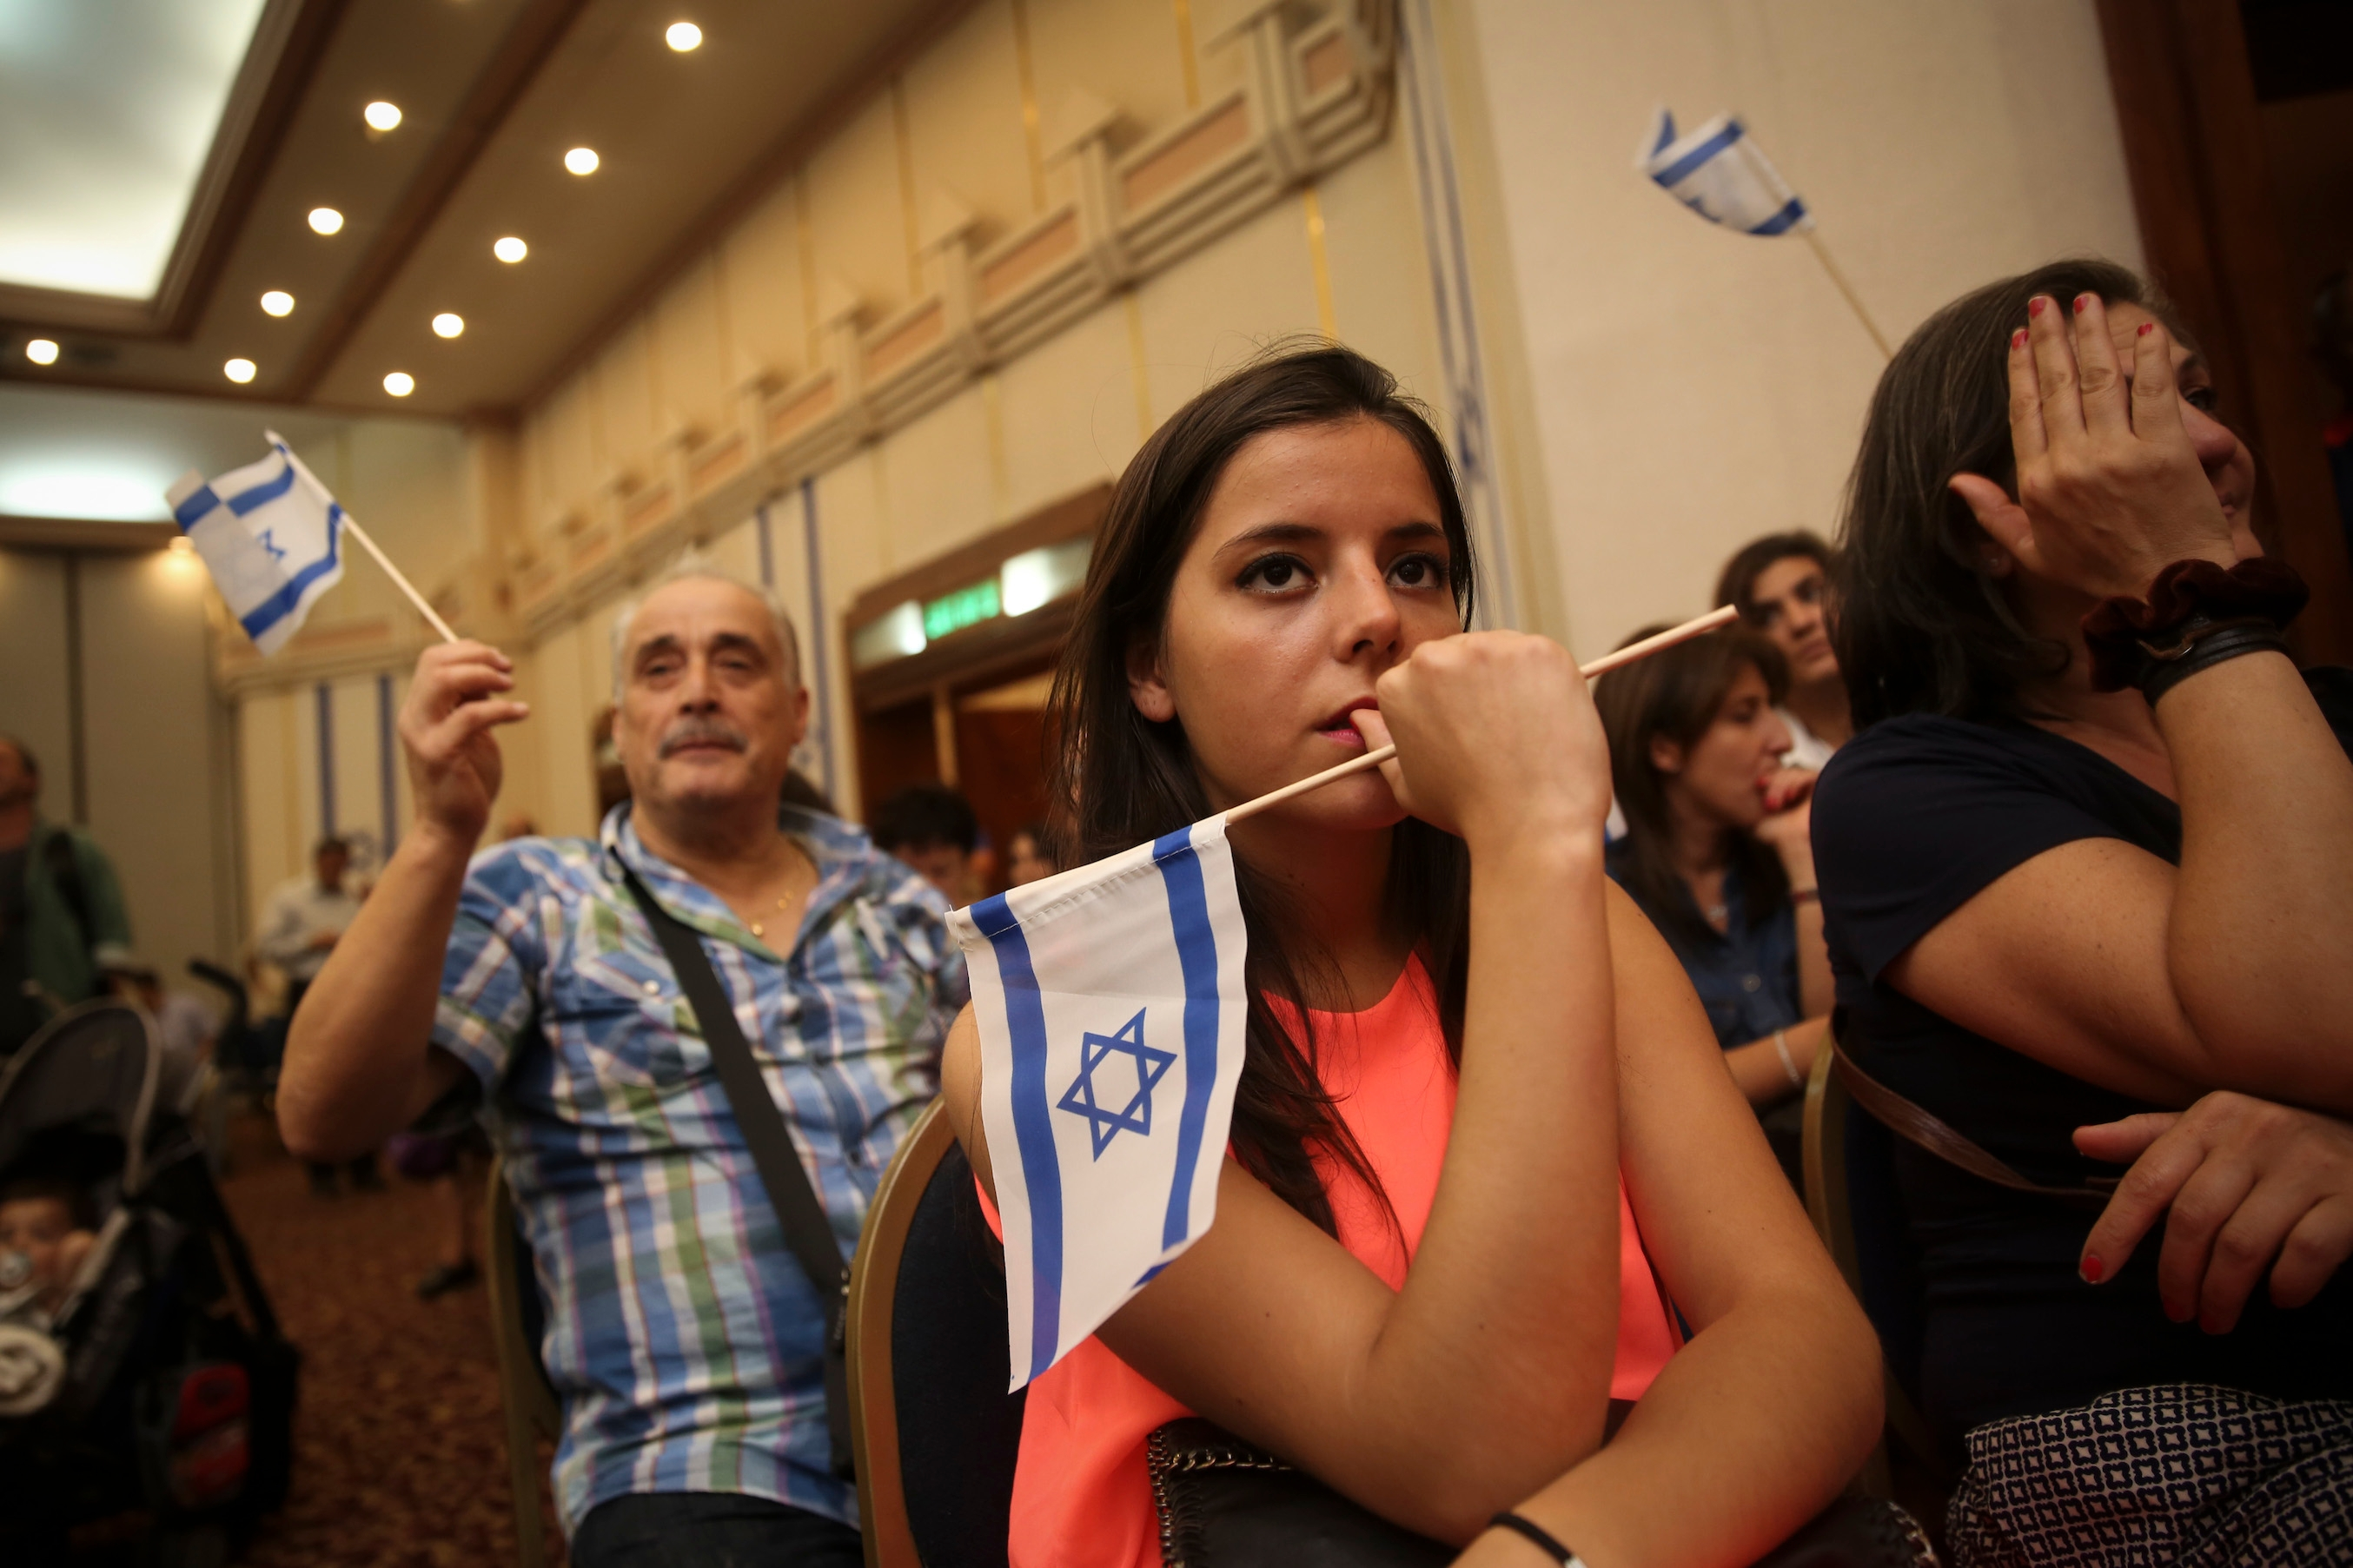 New French immigrants to Israel seen during a welcome ceremony at the Ramada Hotel in Jerusalem, July 17, 2014. (Hadas Parush/Flash90)